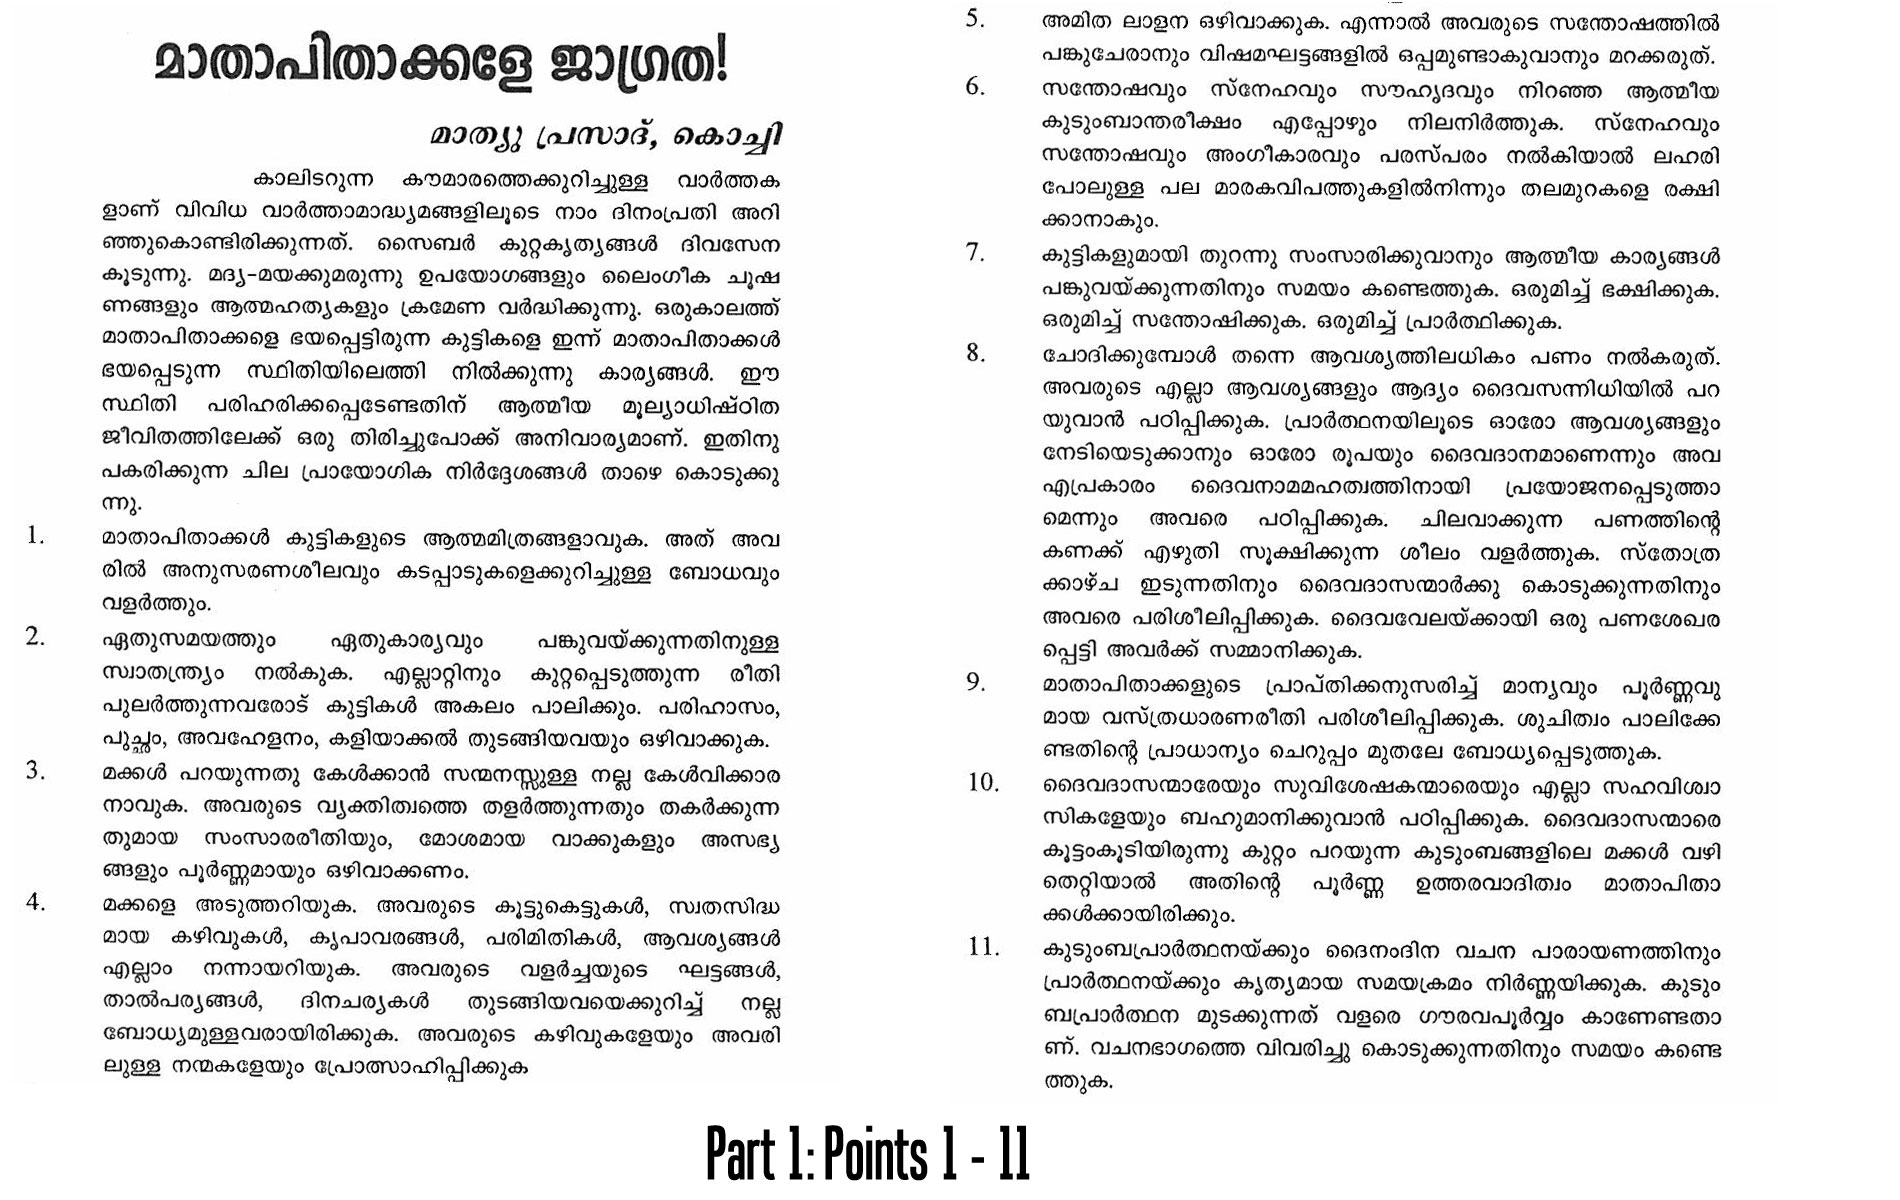 Malayalam Article Christian Parenting Tips Brethren Times